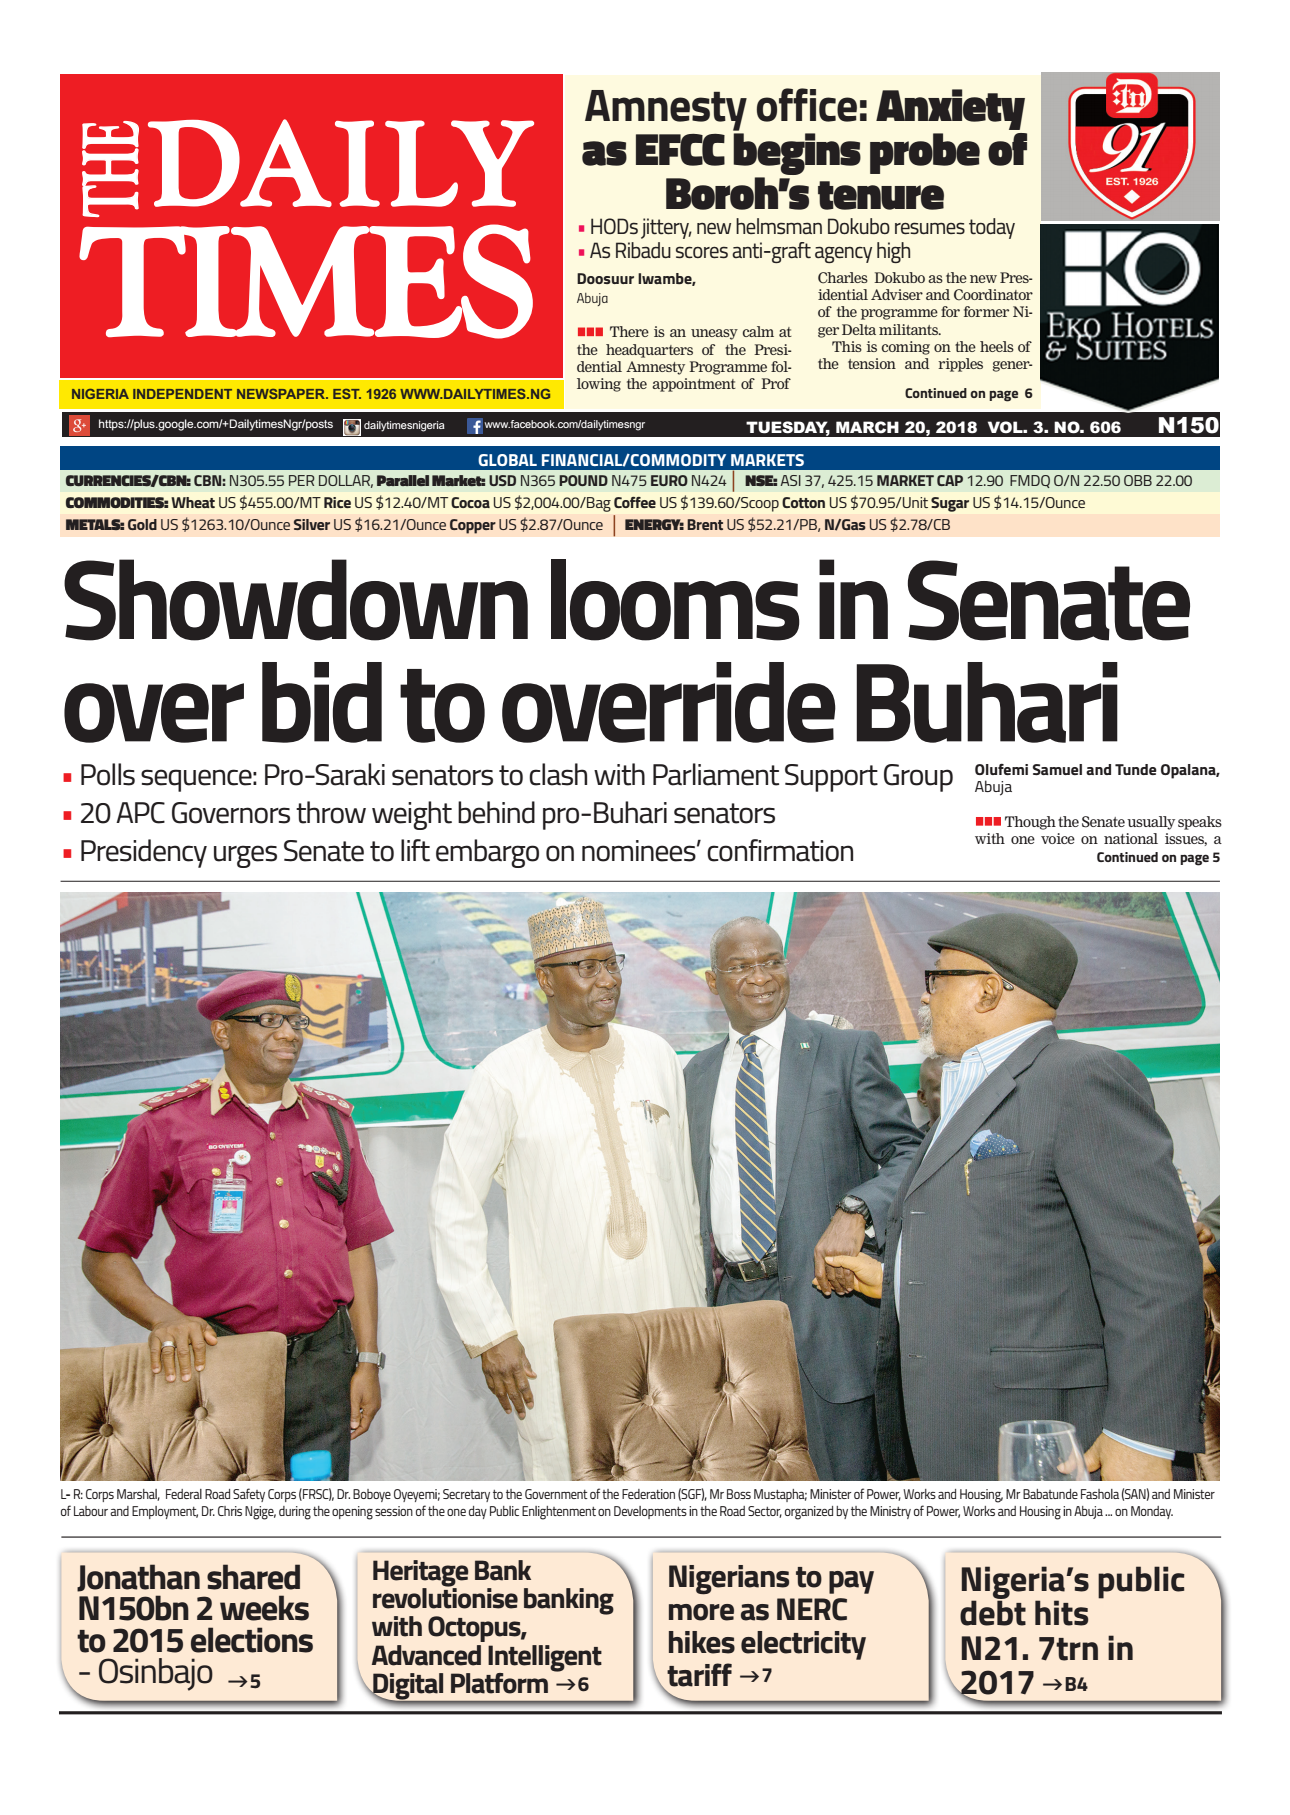 Daily Times Newspaper, Tuesday, March 20, 2018